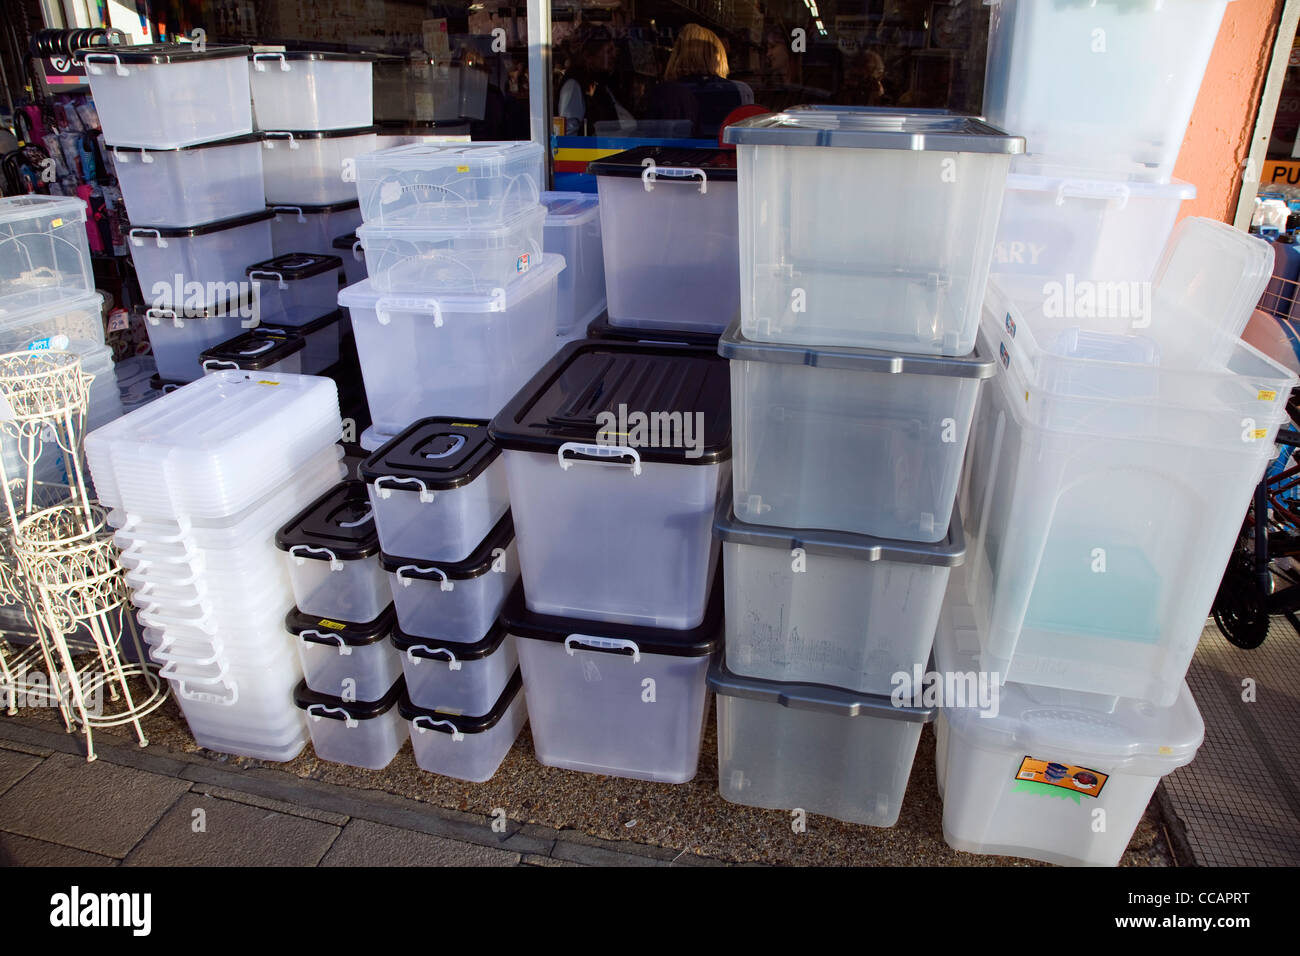 Storage Boxes Sydney Storage Containers Stock Photos Storage Containers Stock Images